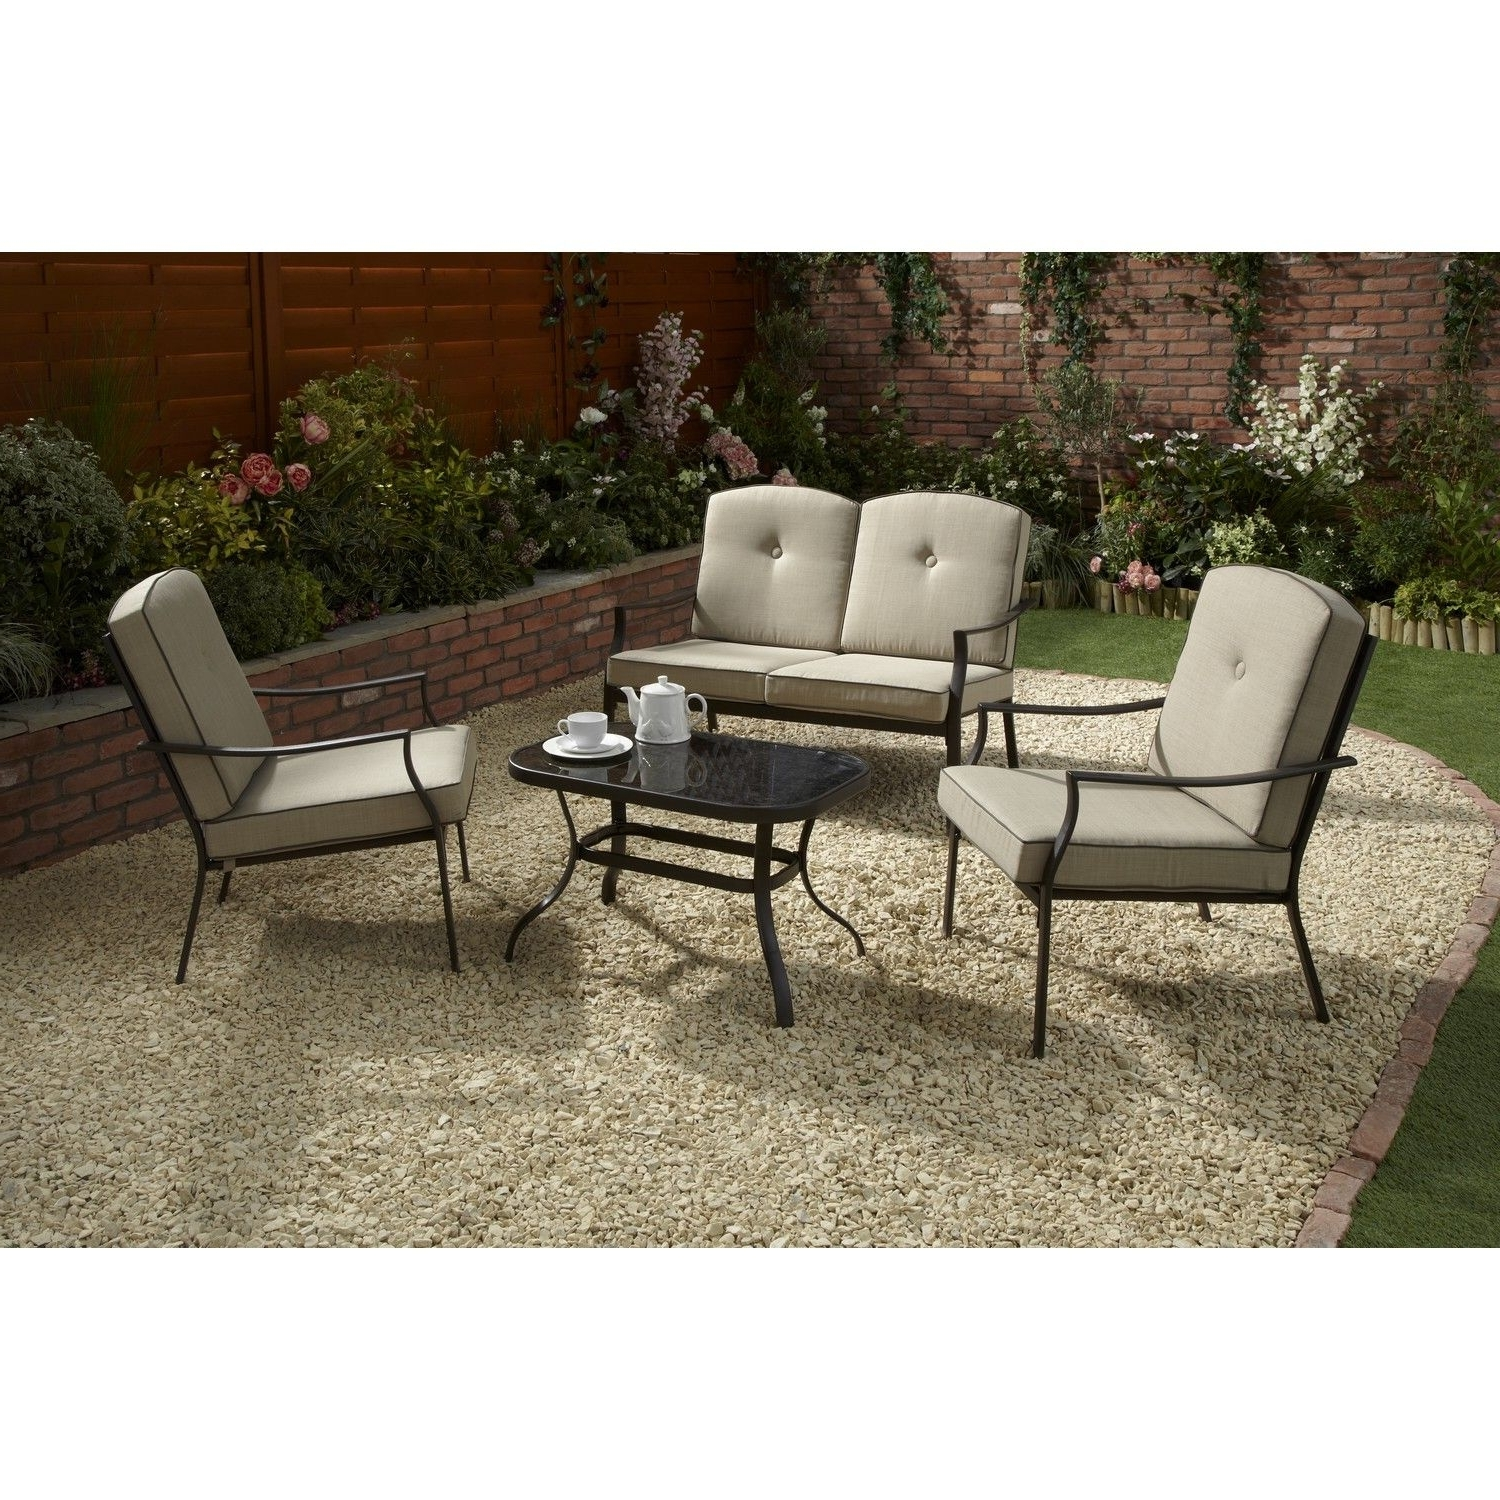 Preferred Black Patio Conversation Sets Pertaining To The Nevada Conversation Set Is The Perfect Alfresco Dining Companion (View 16 of 20)